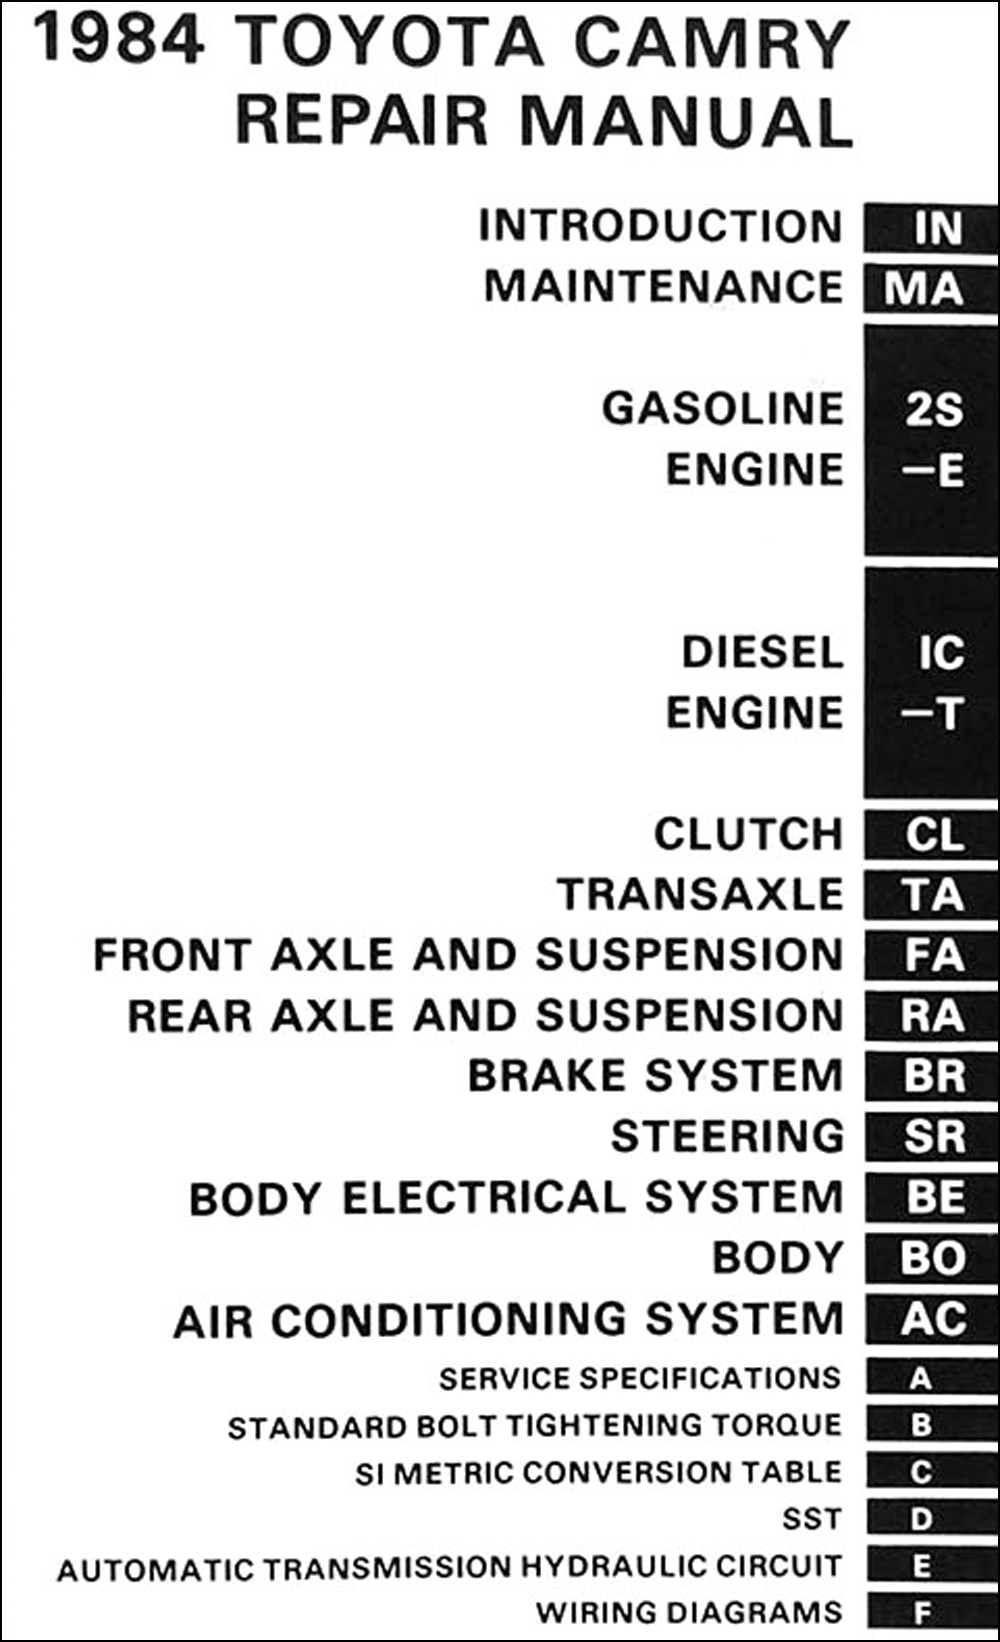 medium resolution of 1984 toyota camry repair manual original click on thumbnail to zoom